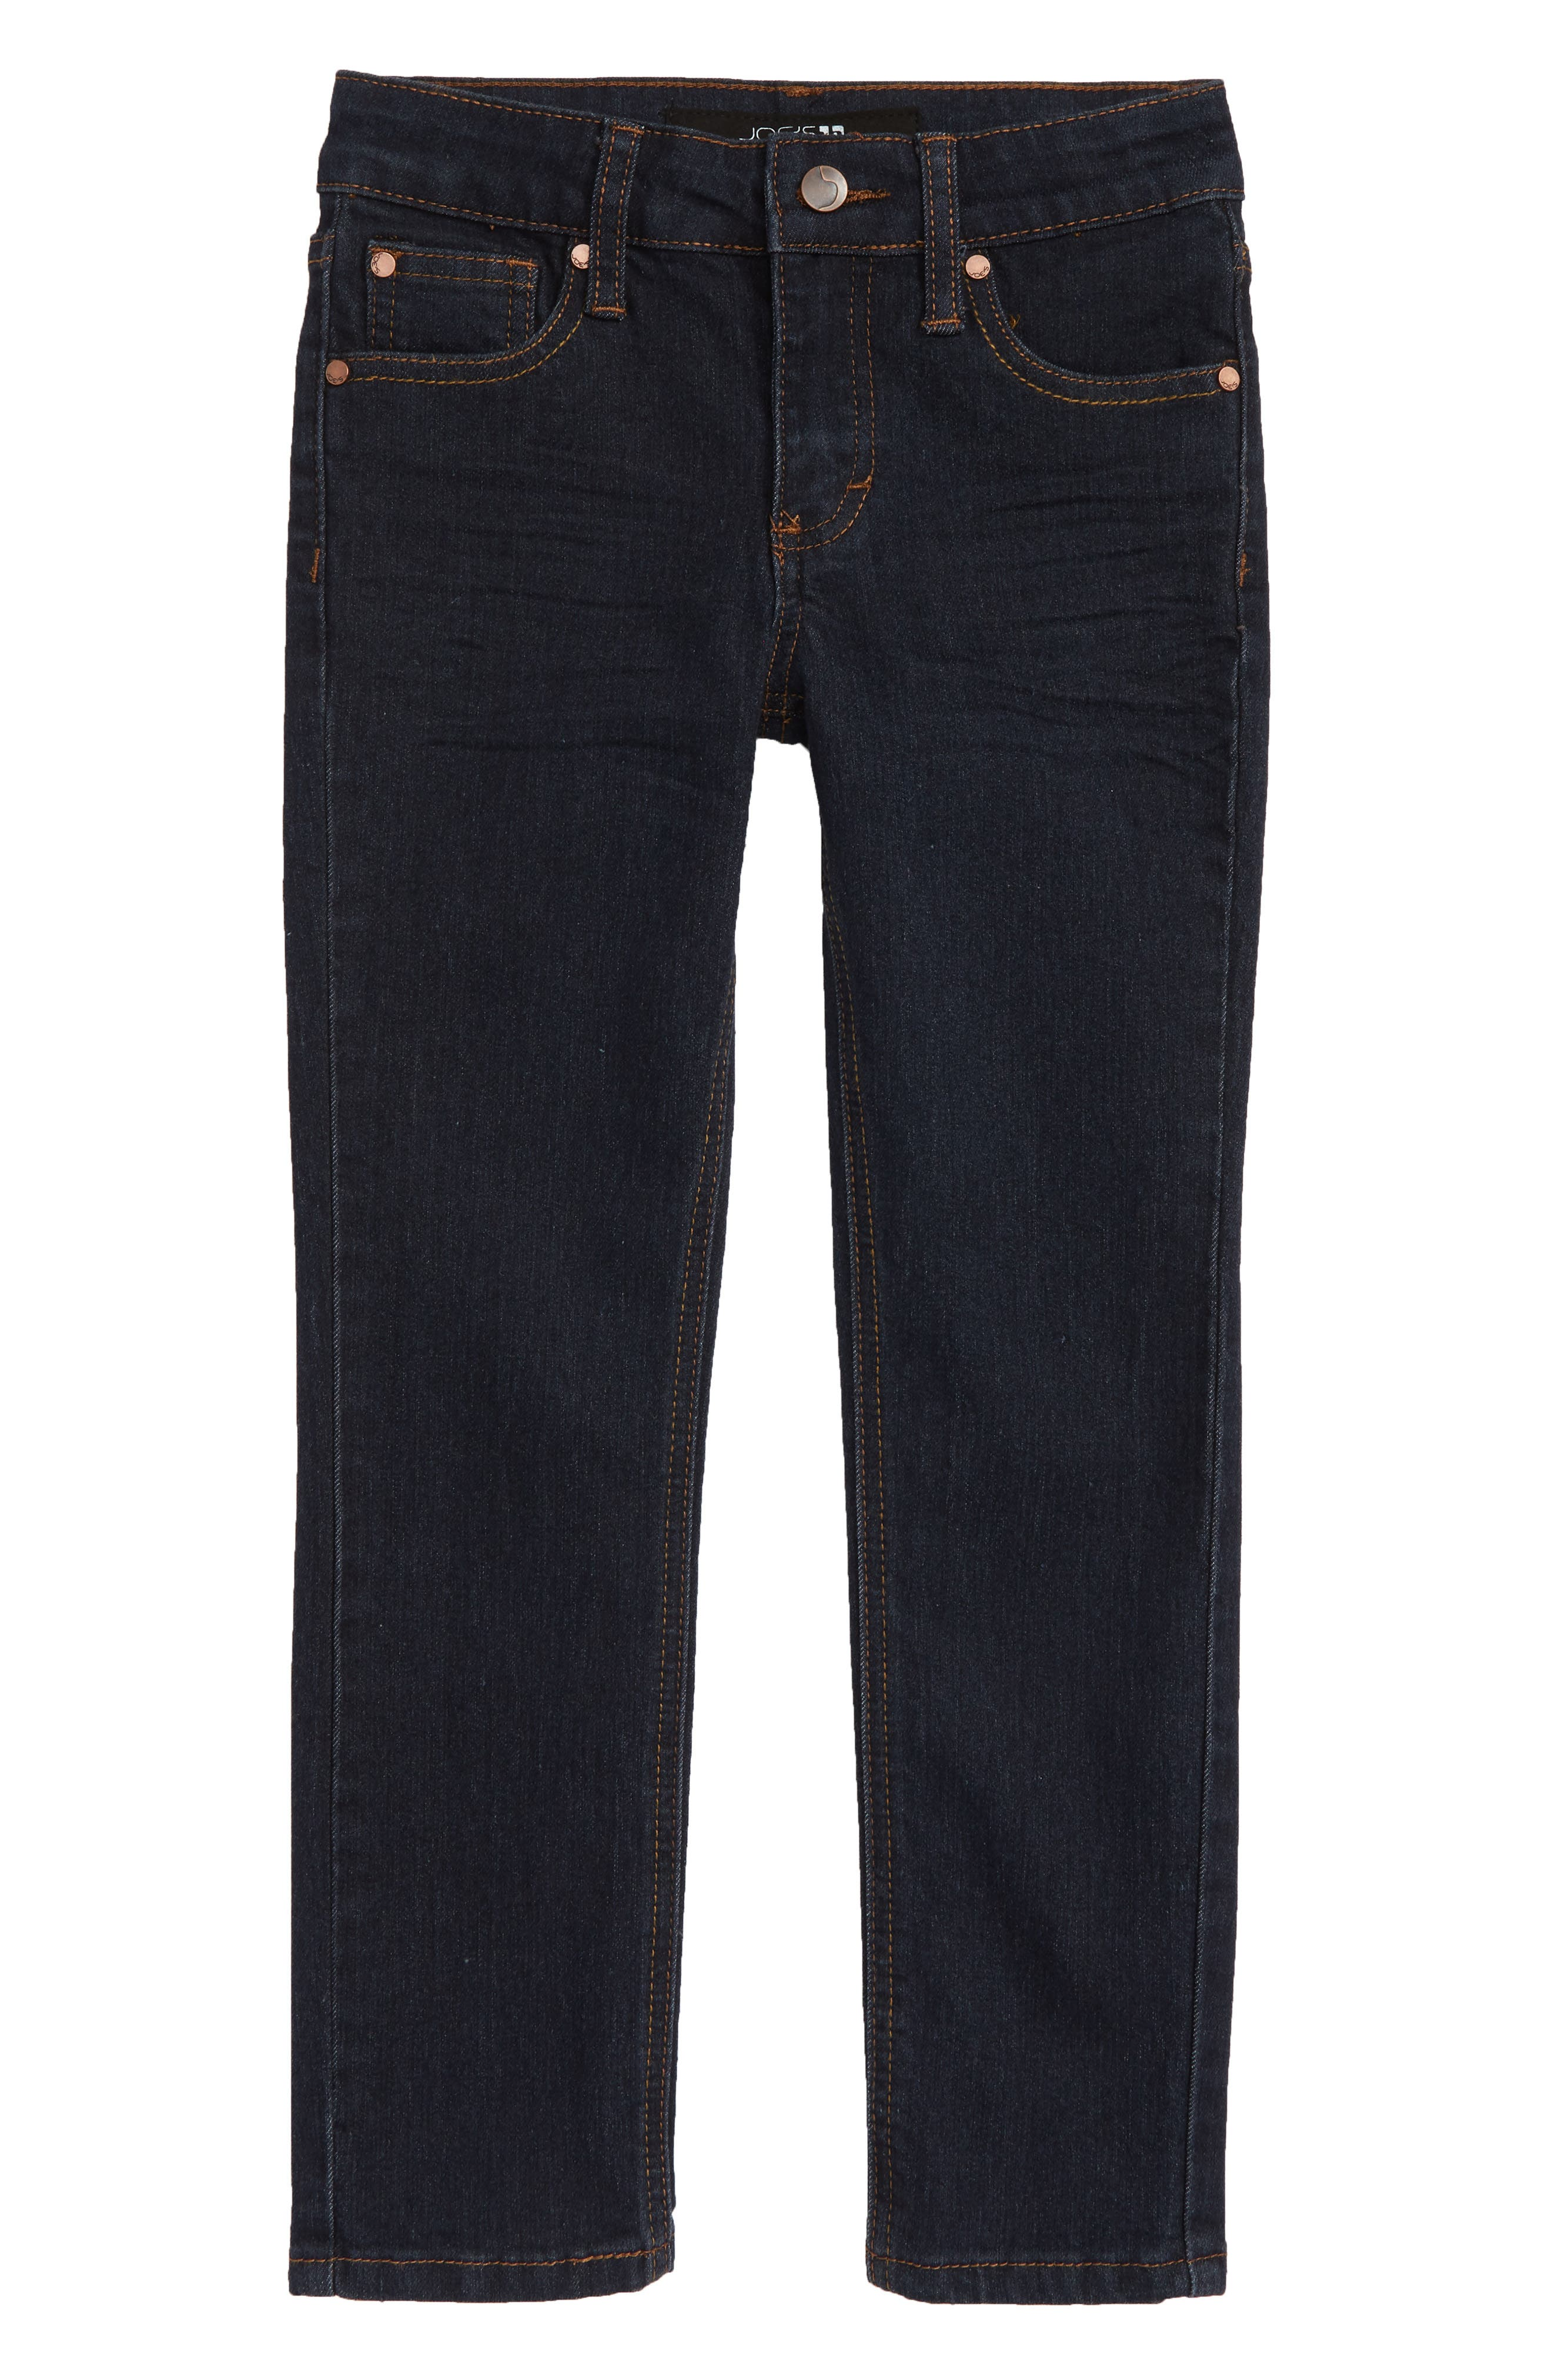 Whiskering from the thighs to the knees furthers the easy, old-favorite attitude of wardrobe-staple jeans cut for comfort from stretch denim. Style Name: Joe\\\'s Kids\\\' Brixton Stretch Jeans (Toddler, Little Boy & Big Boy). Style Number: 5608089. Available in stores.